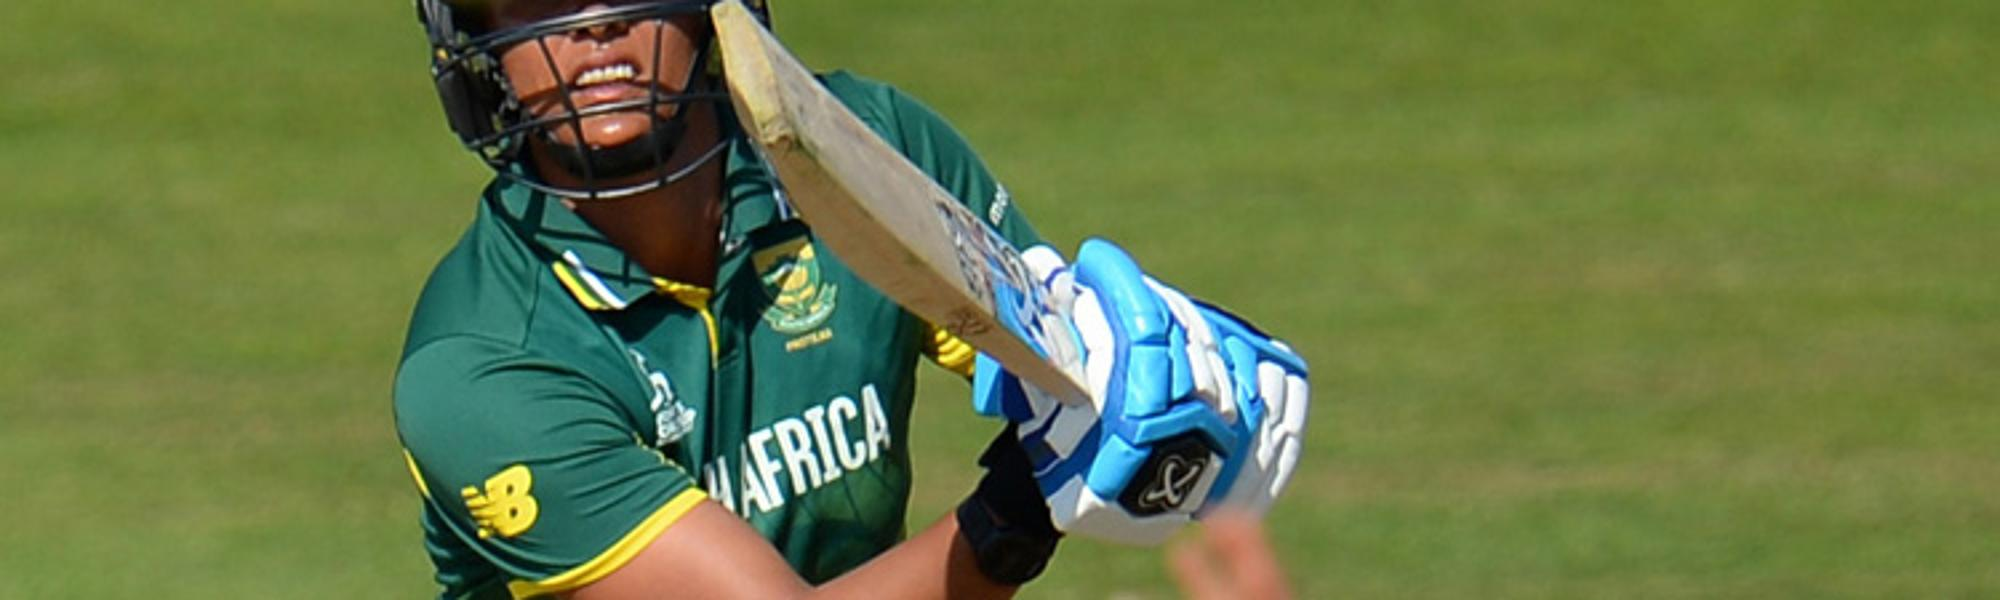 Chloe Tryon of South Africa bats as Danielle Hazell of England attempts to stop the ball during the ICC Women's World Cup 2017 match.